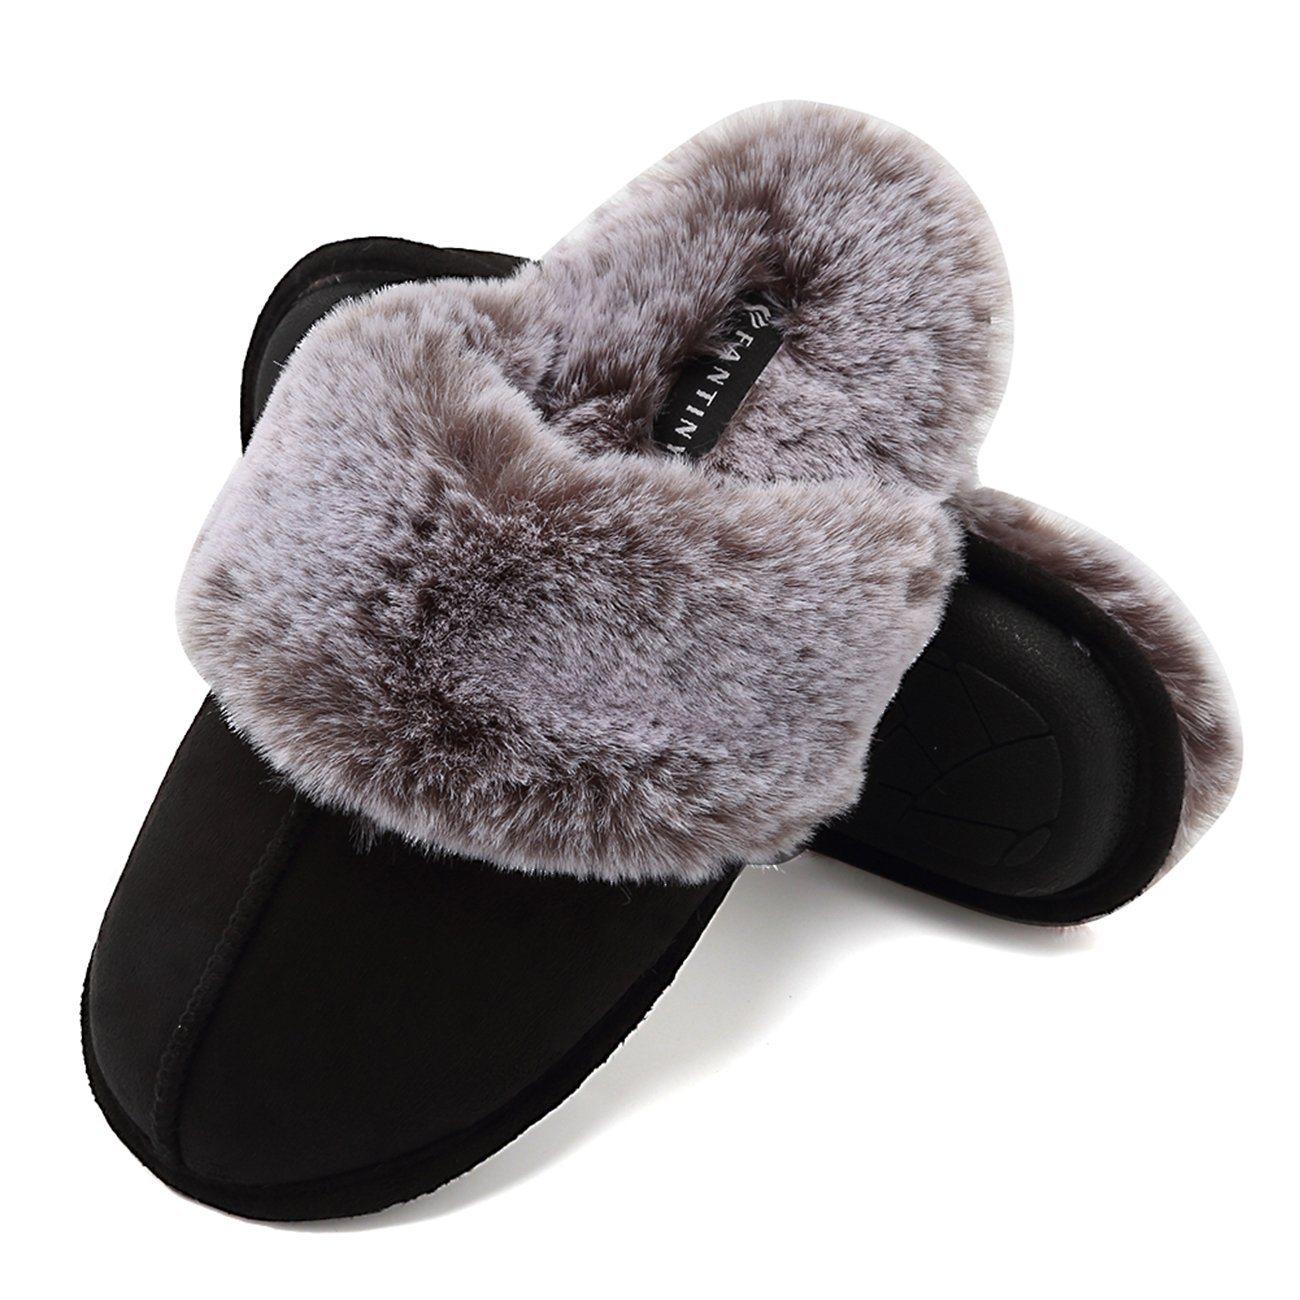 CIOR Fantiny Women's Memory Foam Slippers Faux Fur Lining Slip-on Clog Scuff House Shoes Indoor & Outdoor-U118WMT010-black-F-40.41 by CIOR